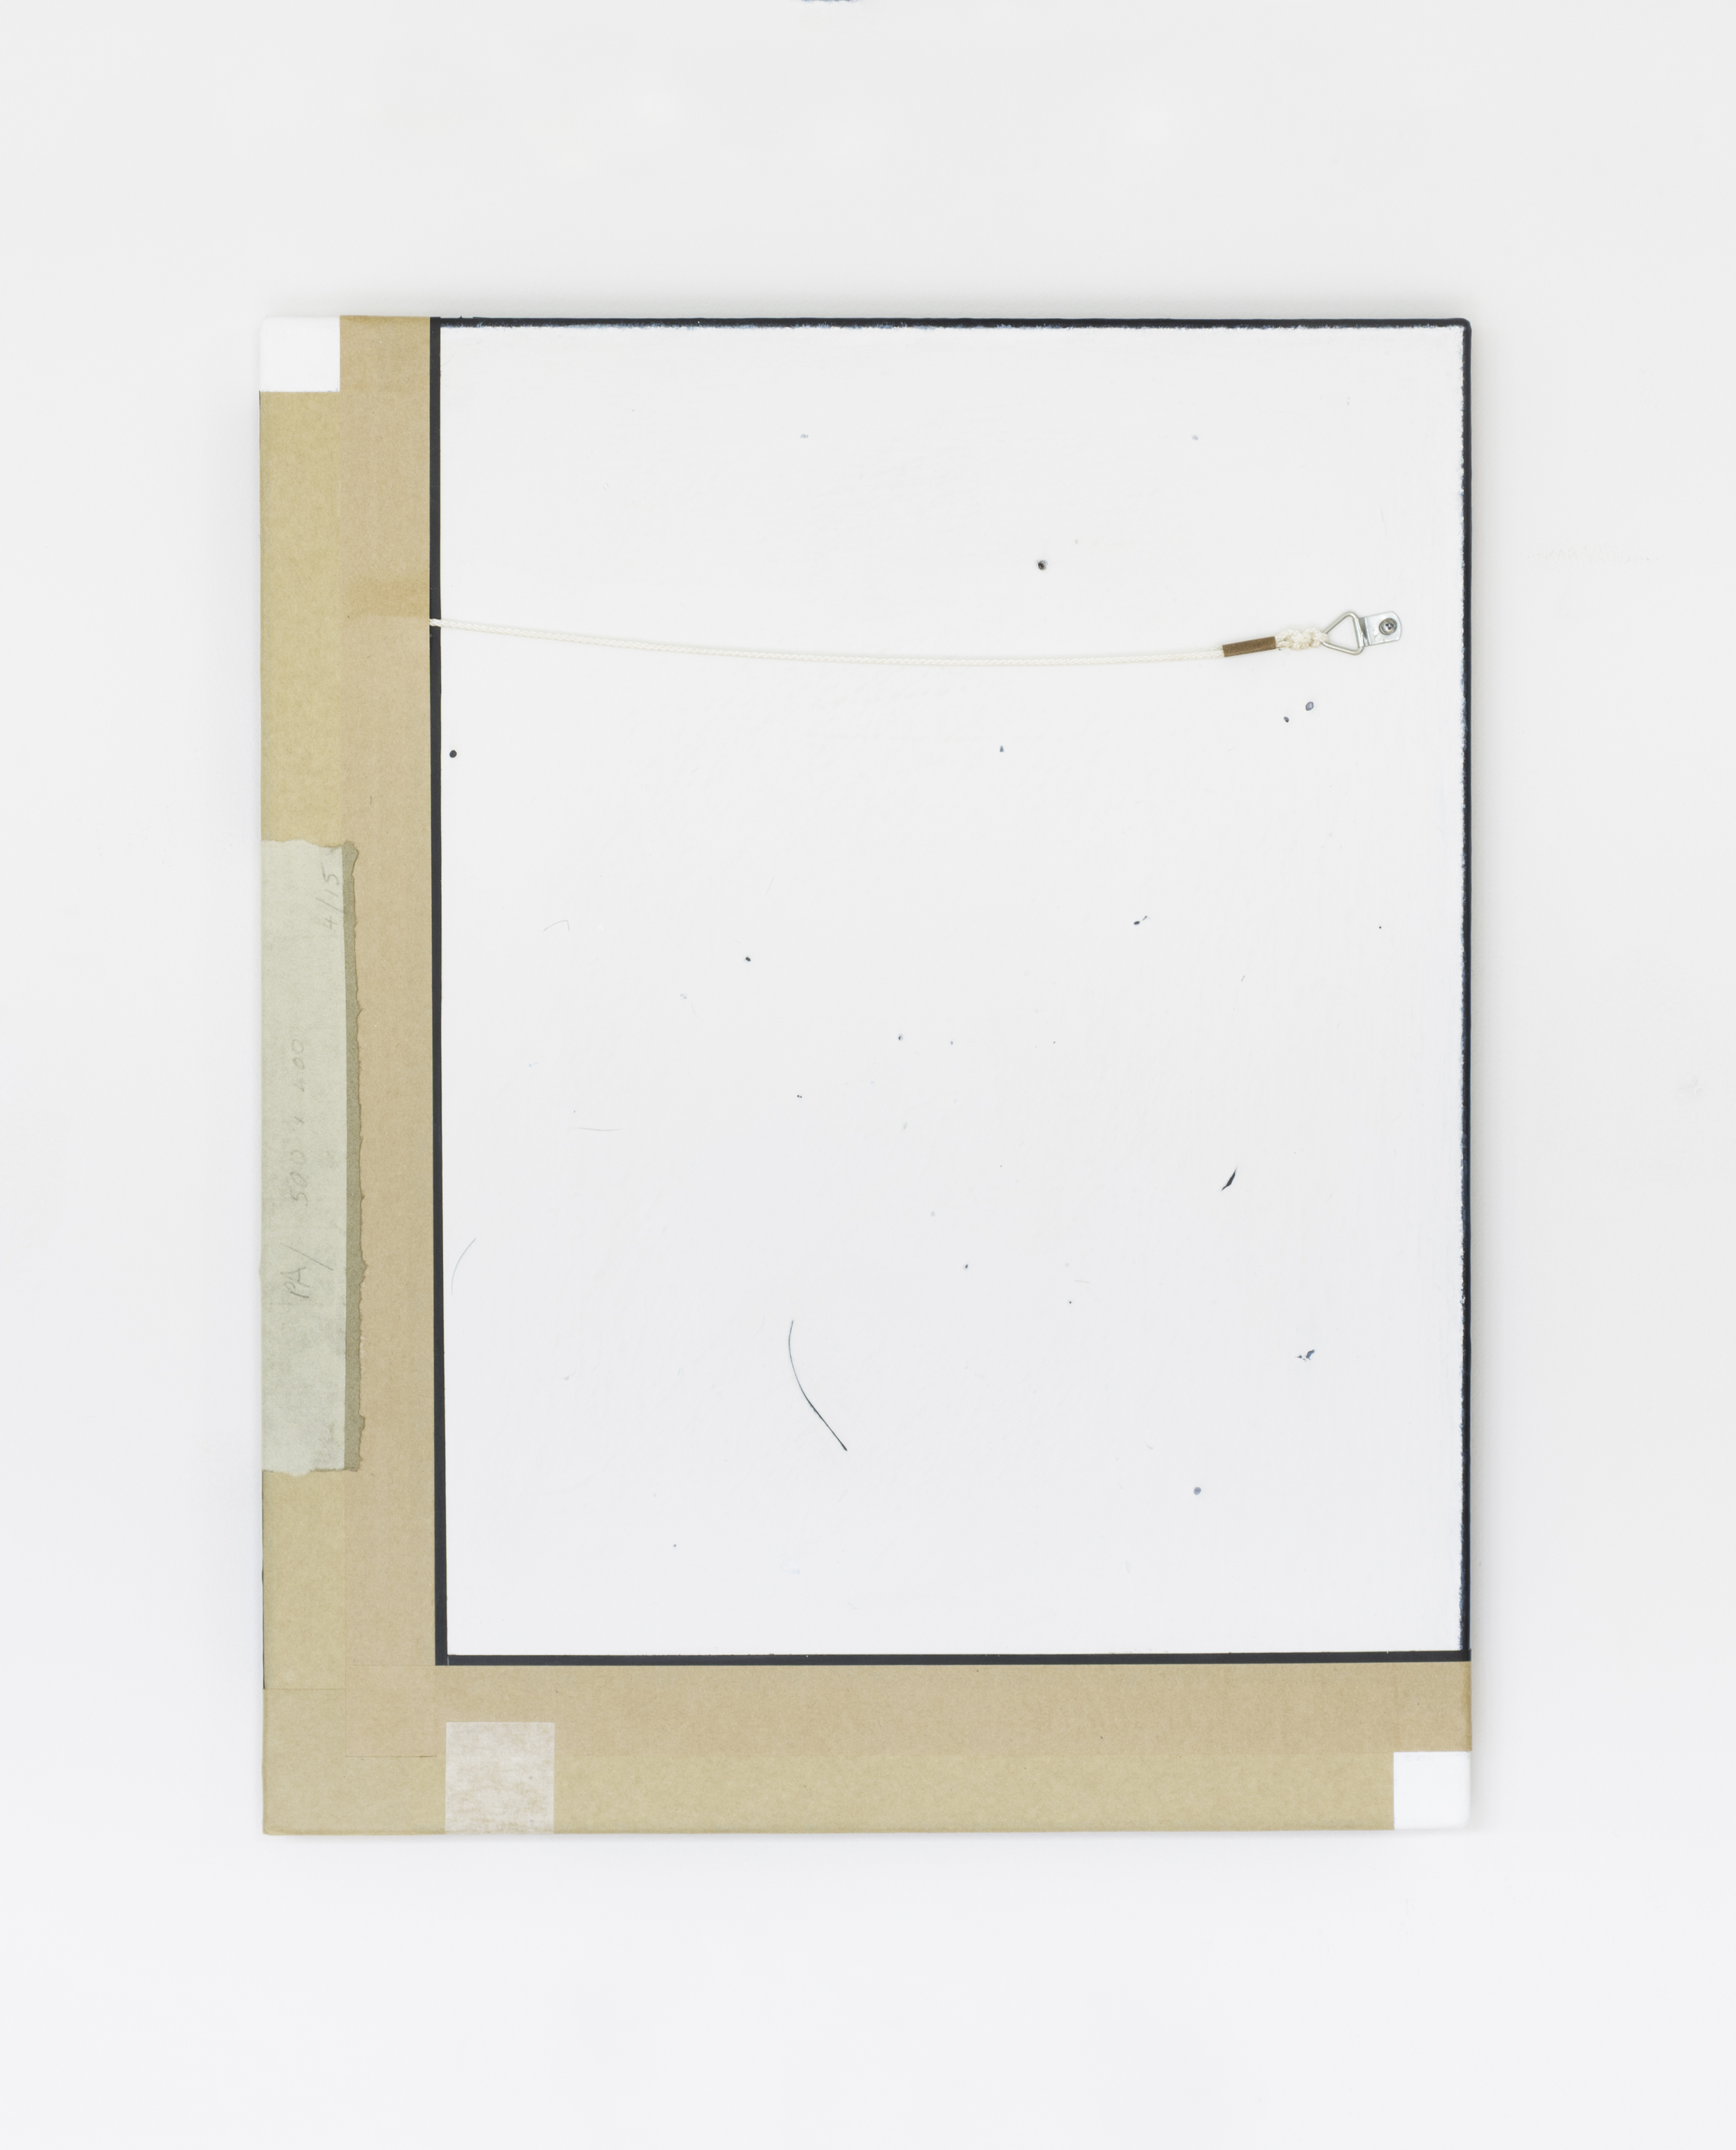 Painting No.4 2015 Awagami paper, painted wallpaper, masking tape, brown framing tape, gum tape, D-hook, white cord, paint, linen, stretcher frame 40 x 50 cm $5000 USD